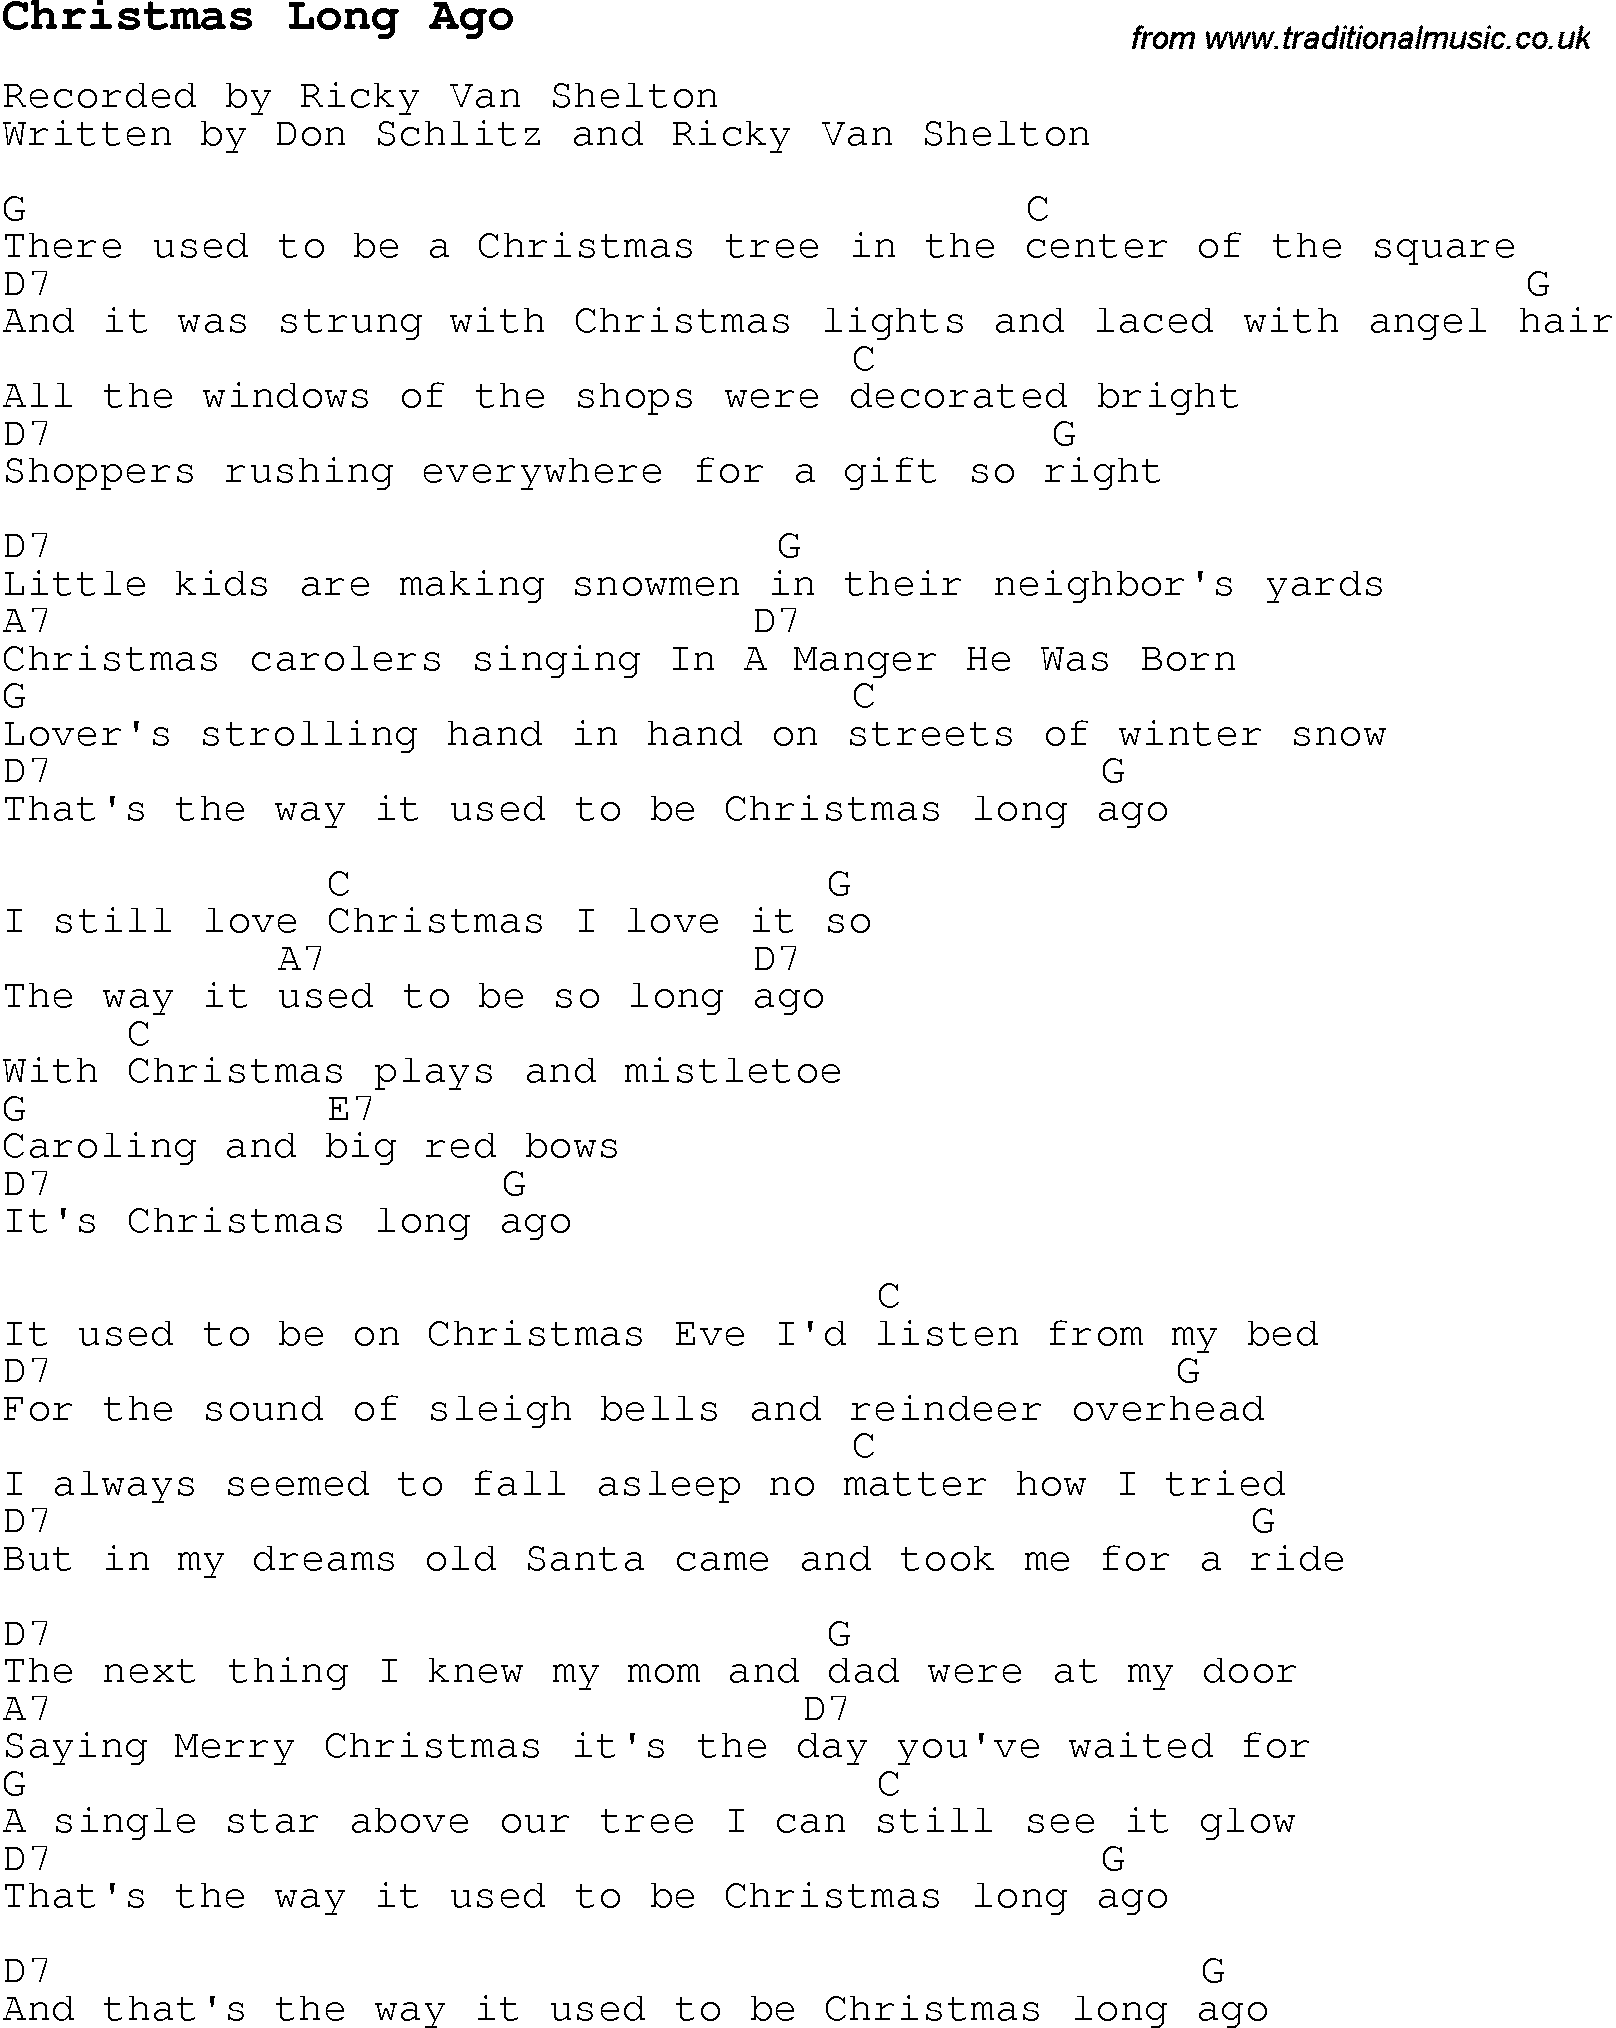 Christmas Carol/Song lyrics with chords for Christmas Long Ago